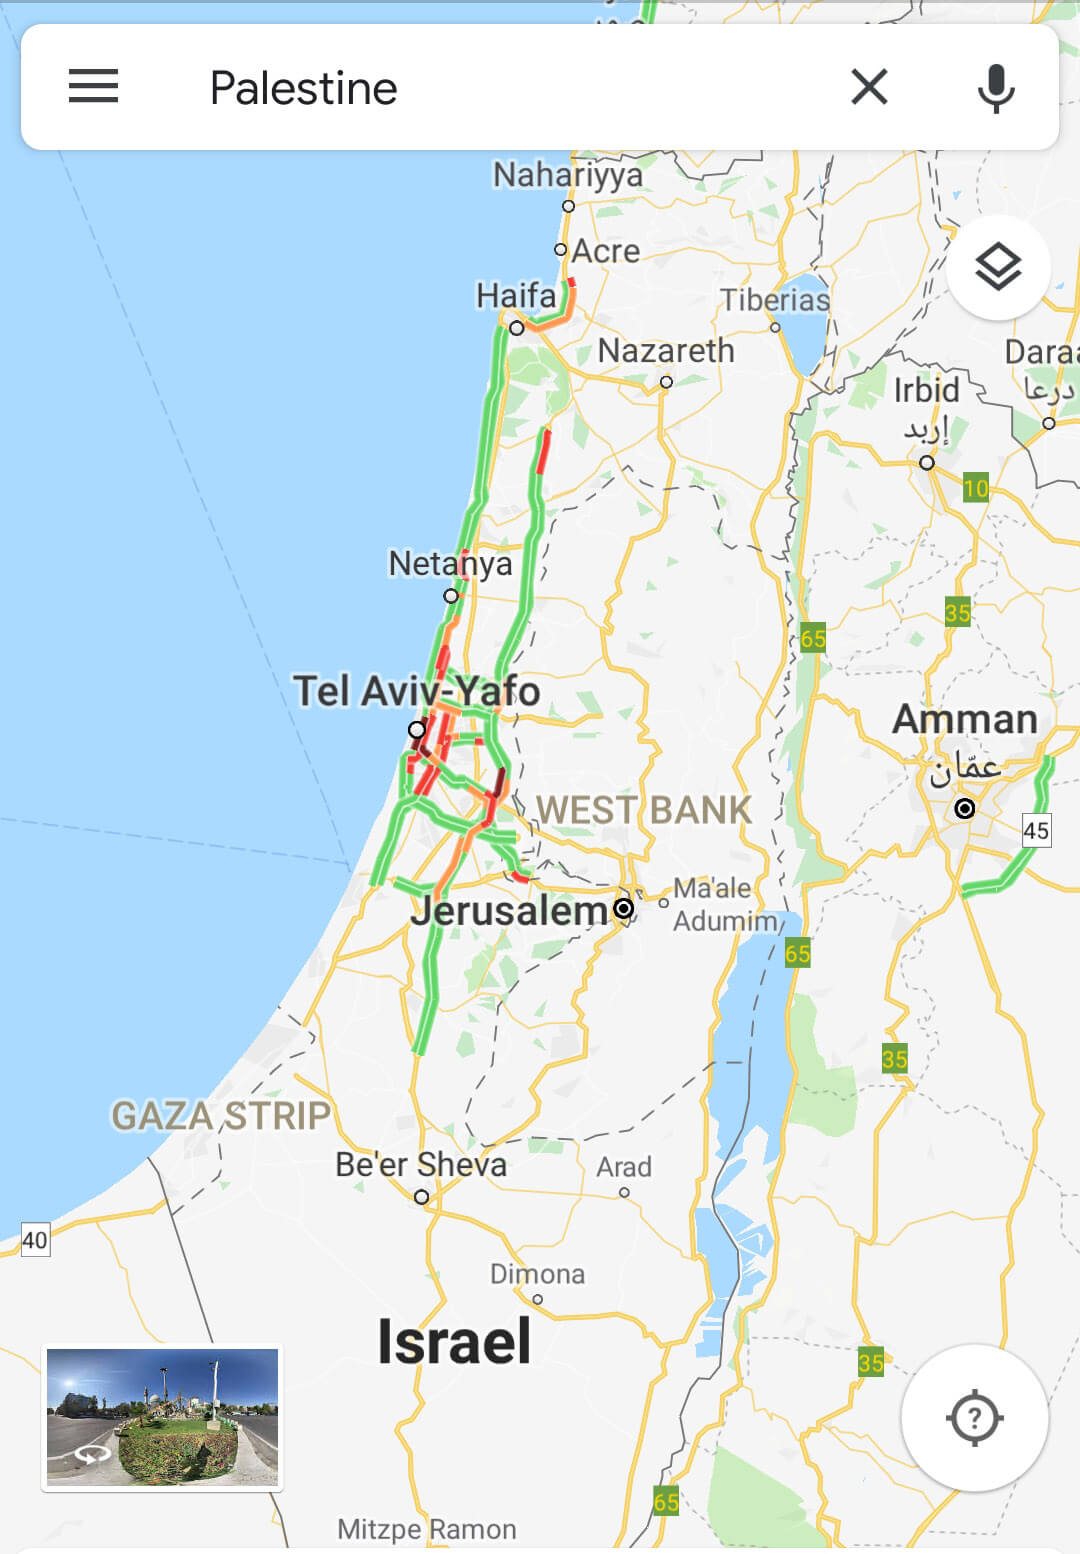 Palestinian cities are ghost towns between settlements, on ... on iphone maps, aeronautical maps, aerial maps, goolge maps, googlr maps, gogole maps, waze maps, road map usa states maps, gppgle maps, amazon fire phone maps, microsoft maps, search maps, bing maps, topographic maps, stanford university maps, ipad maps, msn maps, googie maps, android maps, online maps,